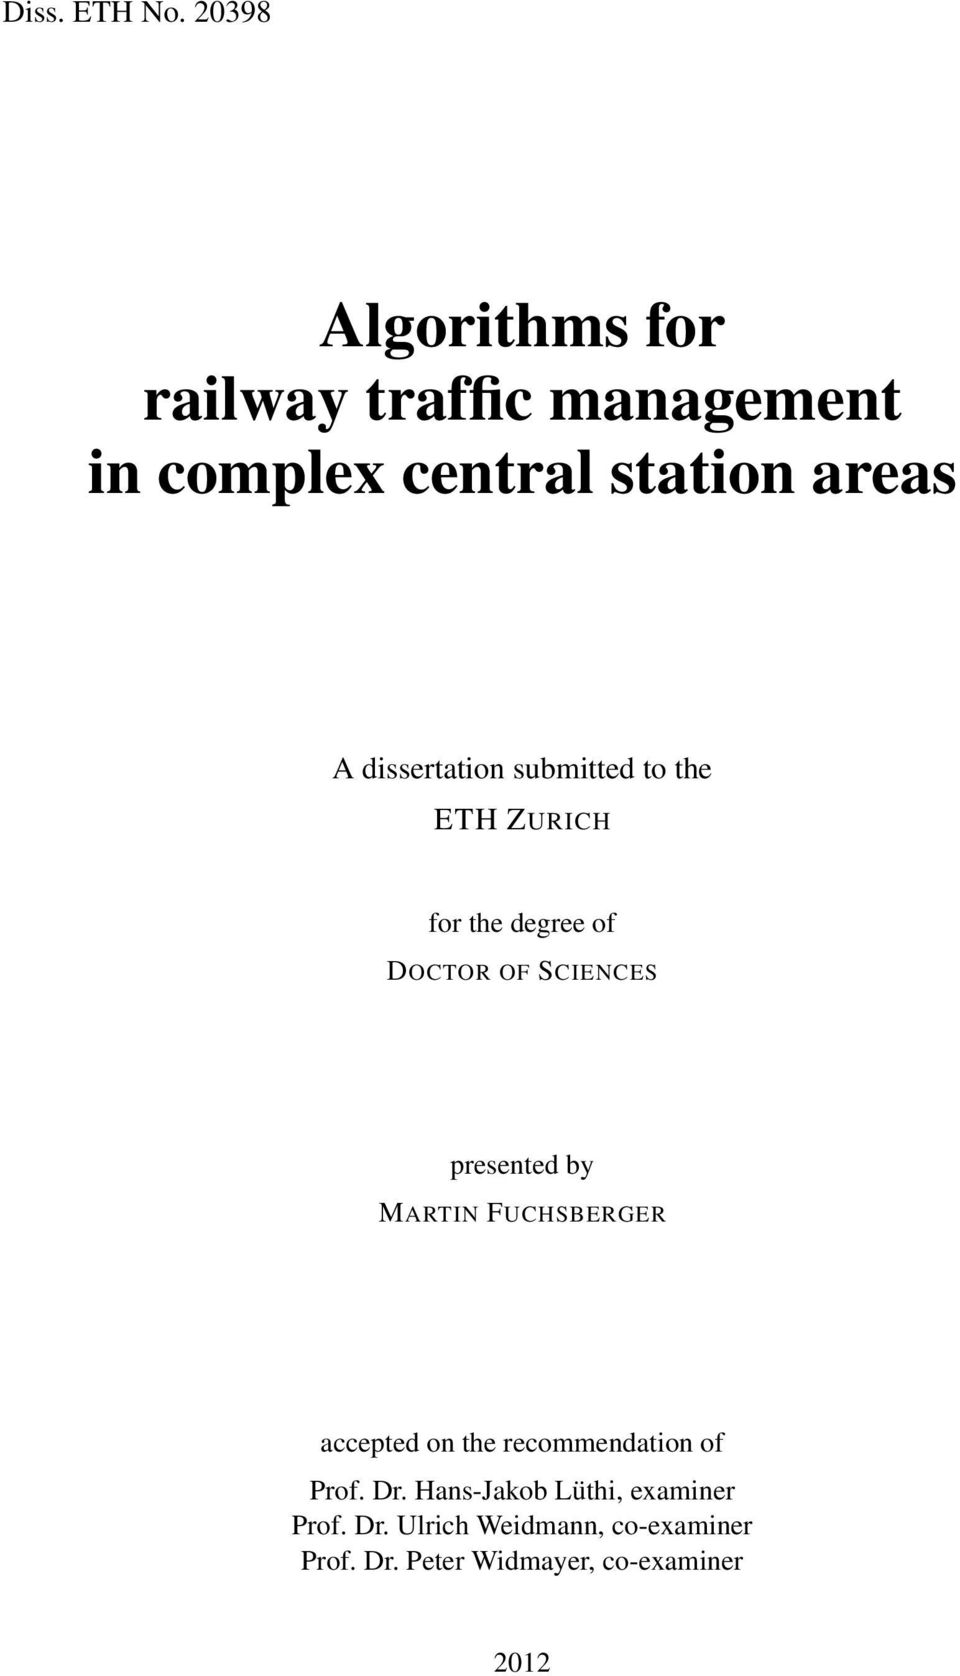 dissertation submitted to the ETH ZURICH for the degree of DOCTOR OF SCIENCES presented